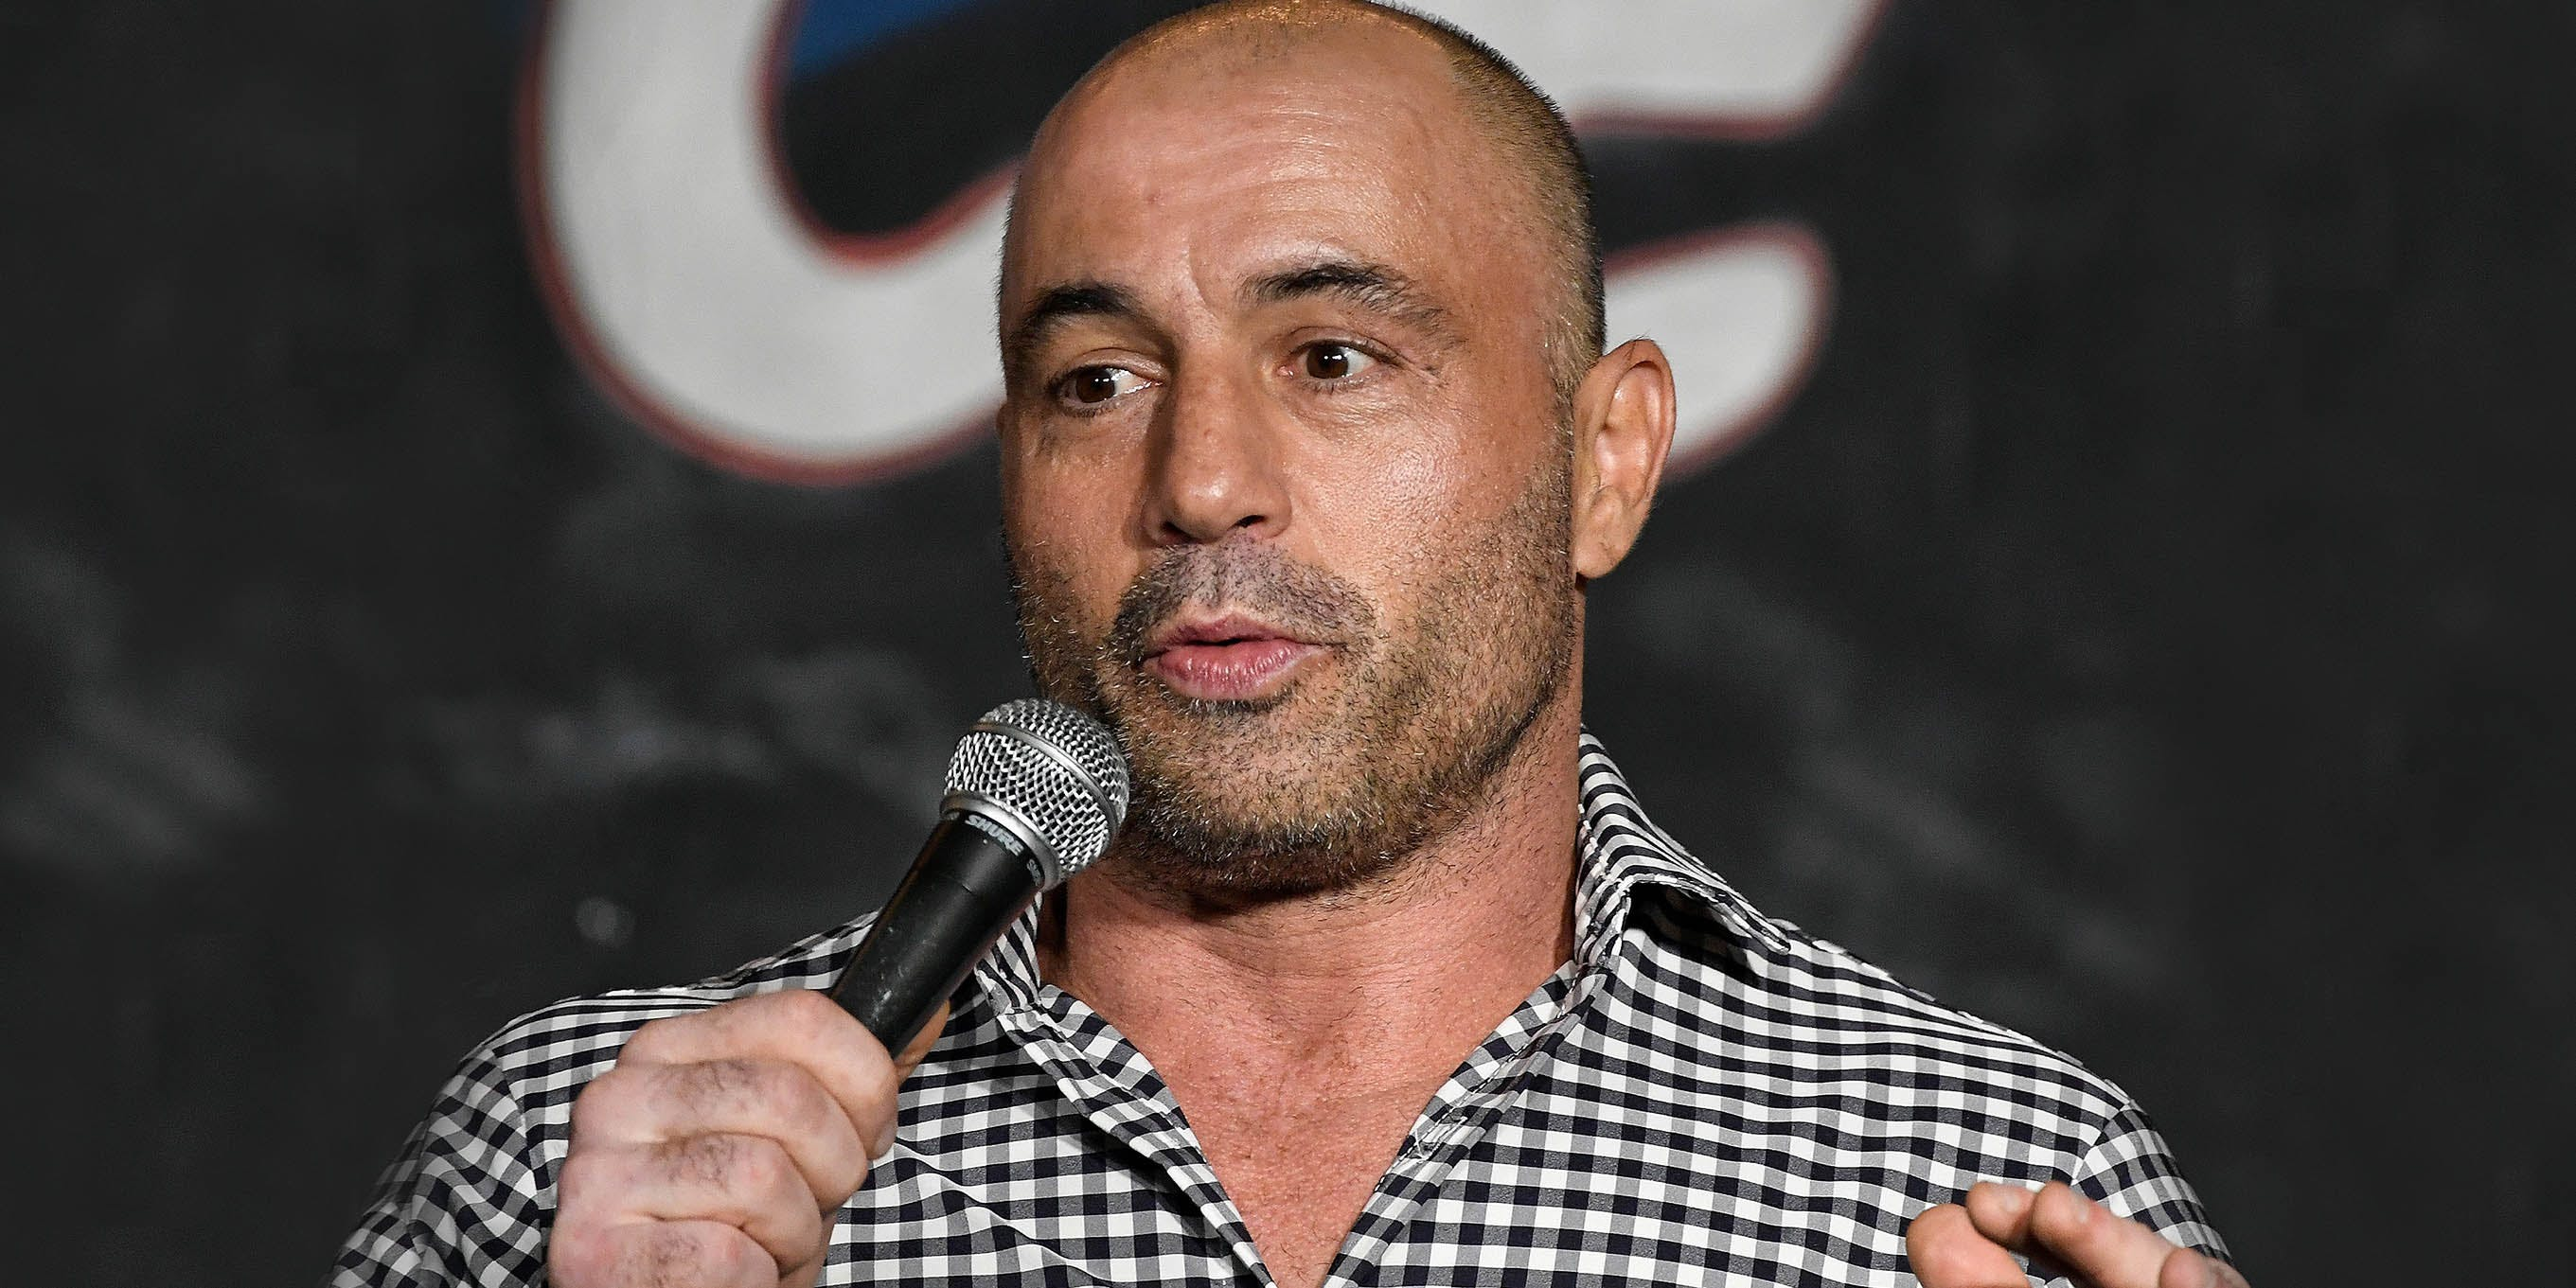 Joe Rogan is on Herb's roundup of celebrities who are helping legalize weed.